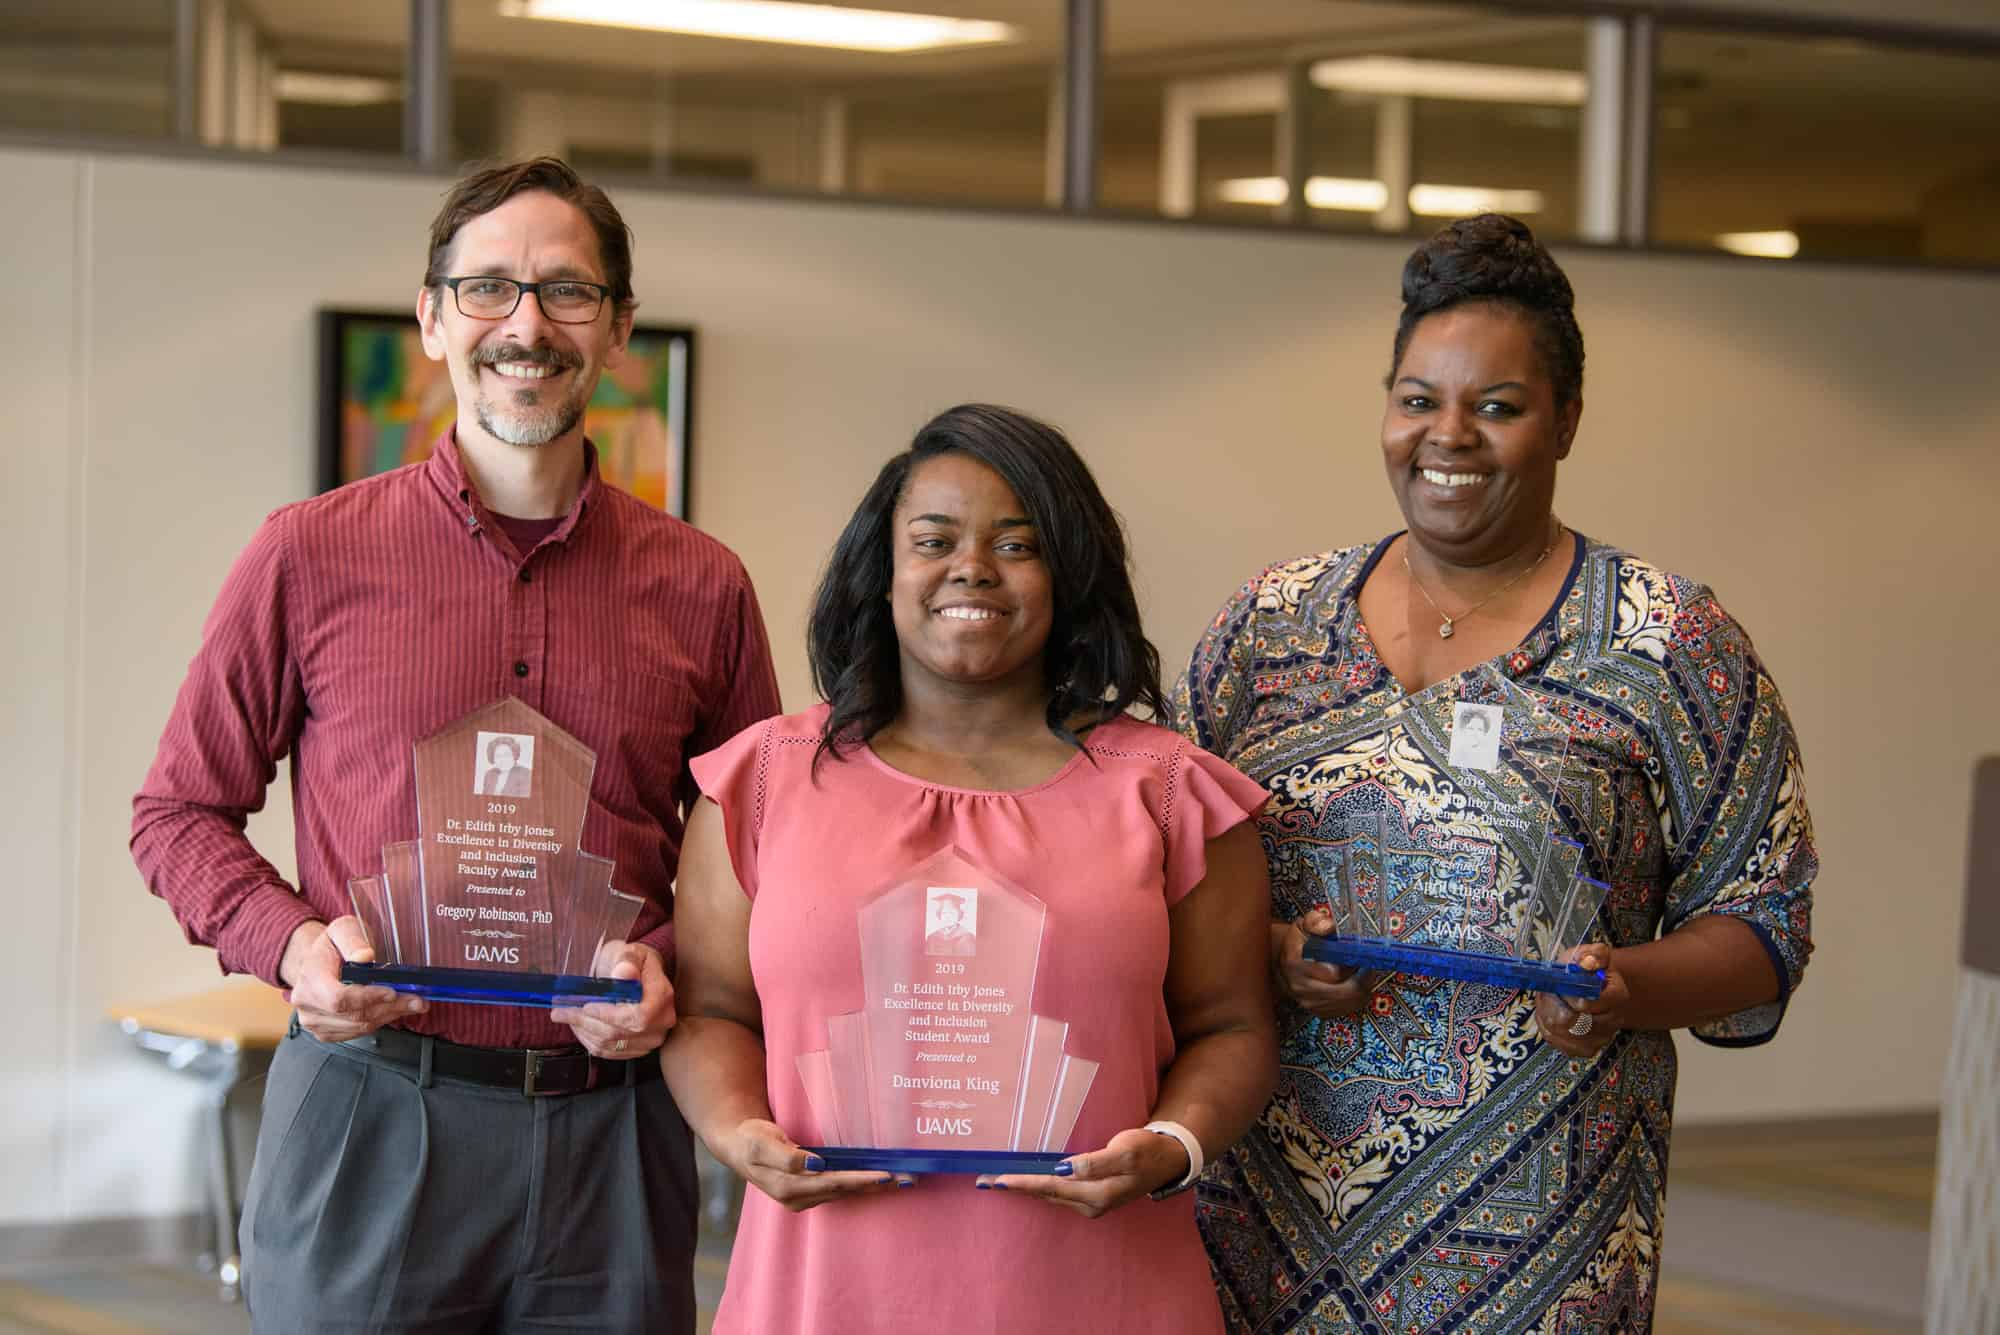 Greg Robinson (left) was the faculty recipient of the Dr. Edith Irby Jones Excellence in Diversity and Inclusion Award for his work with a transgender language clinic.